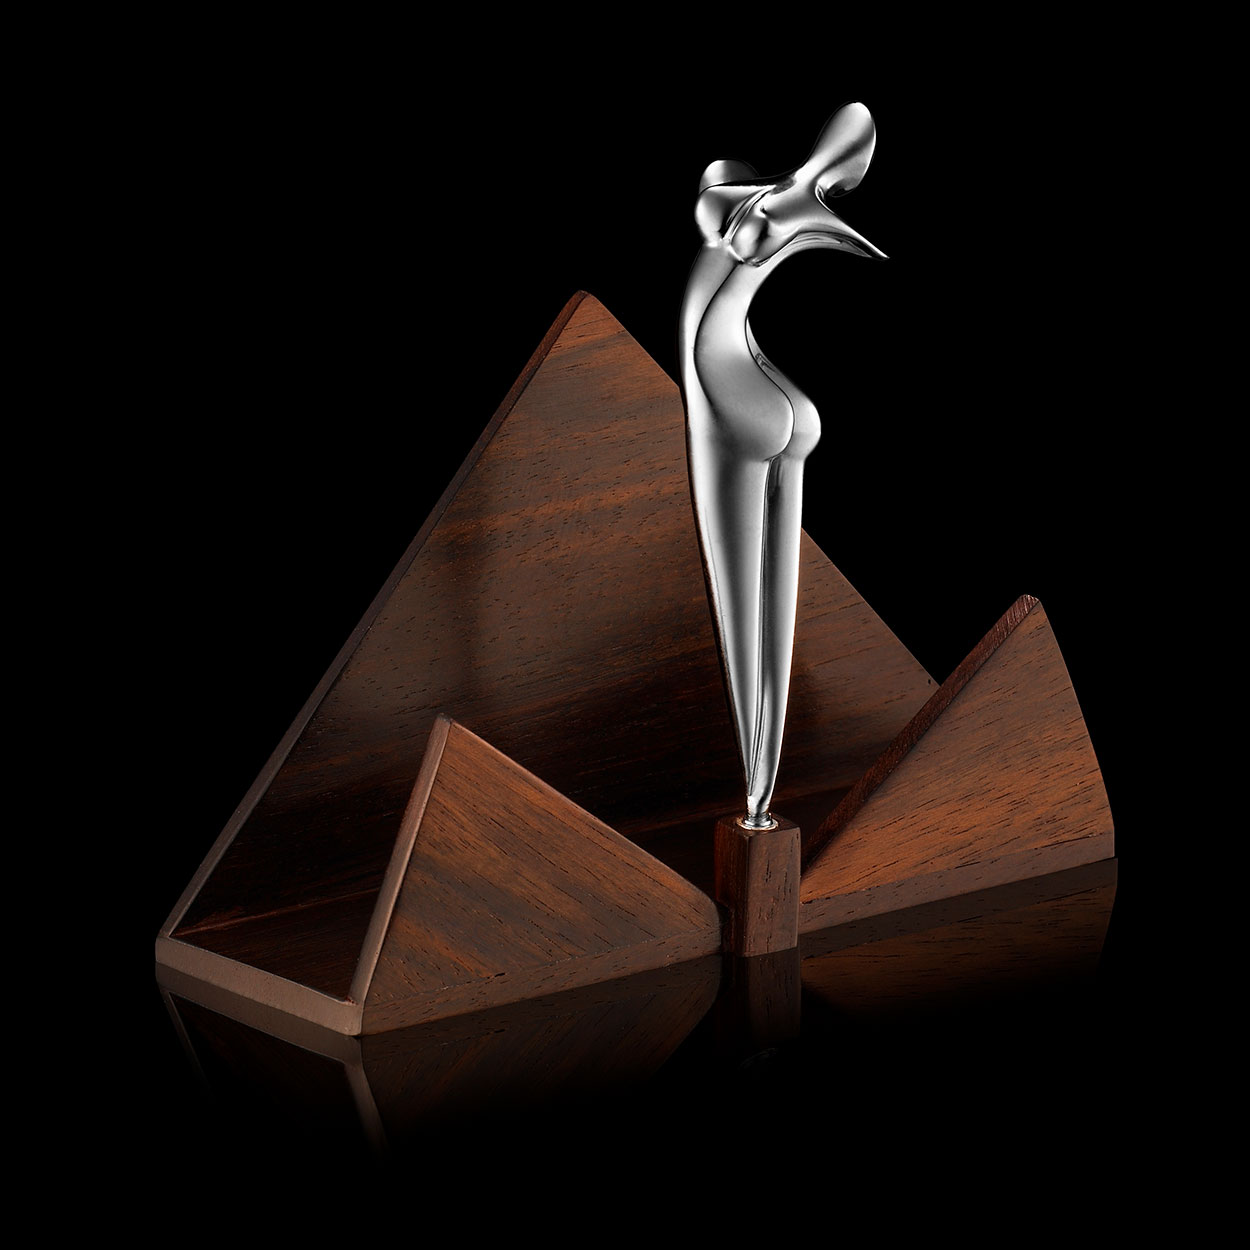 Nina, card holder, Ebony wood and solid silver, Marion Bürklé sculptor